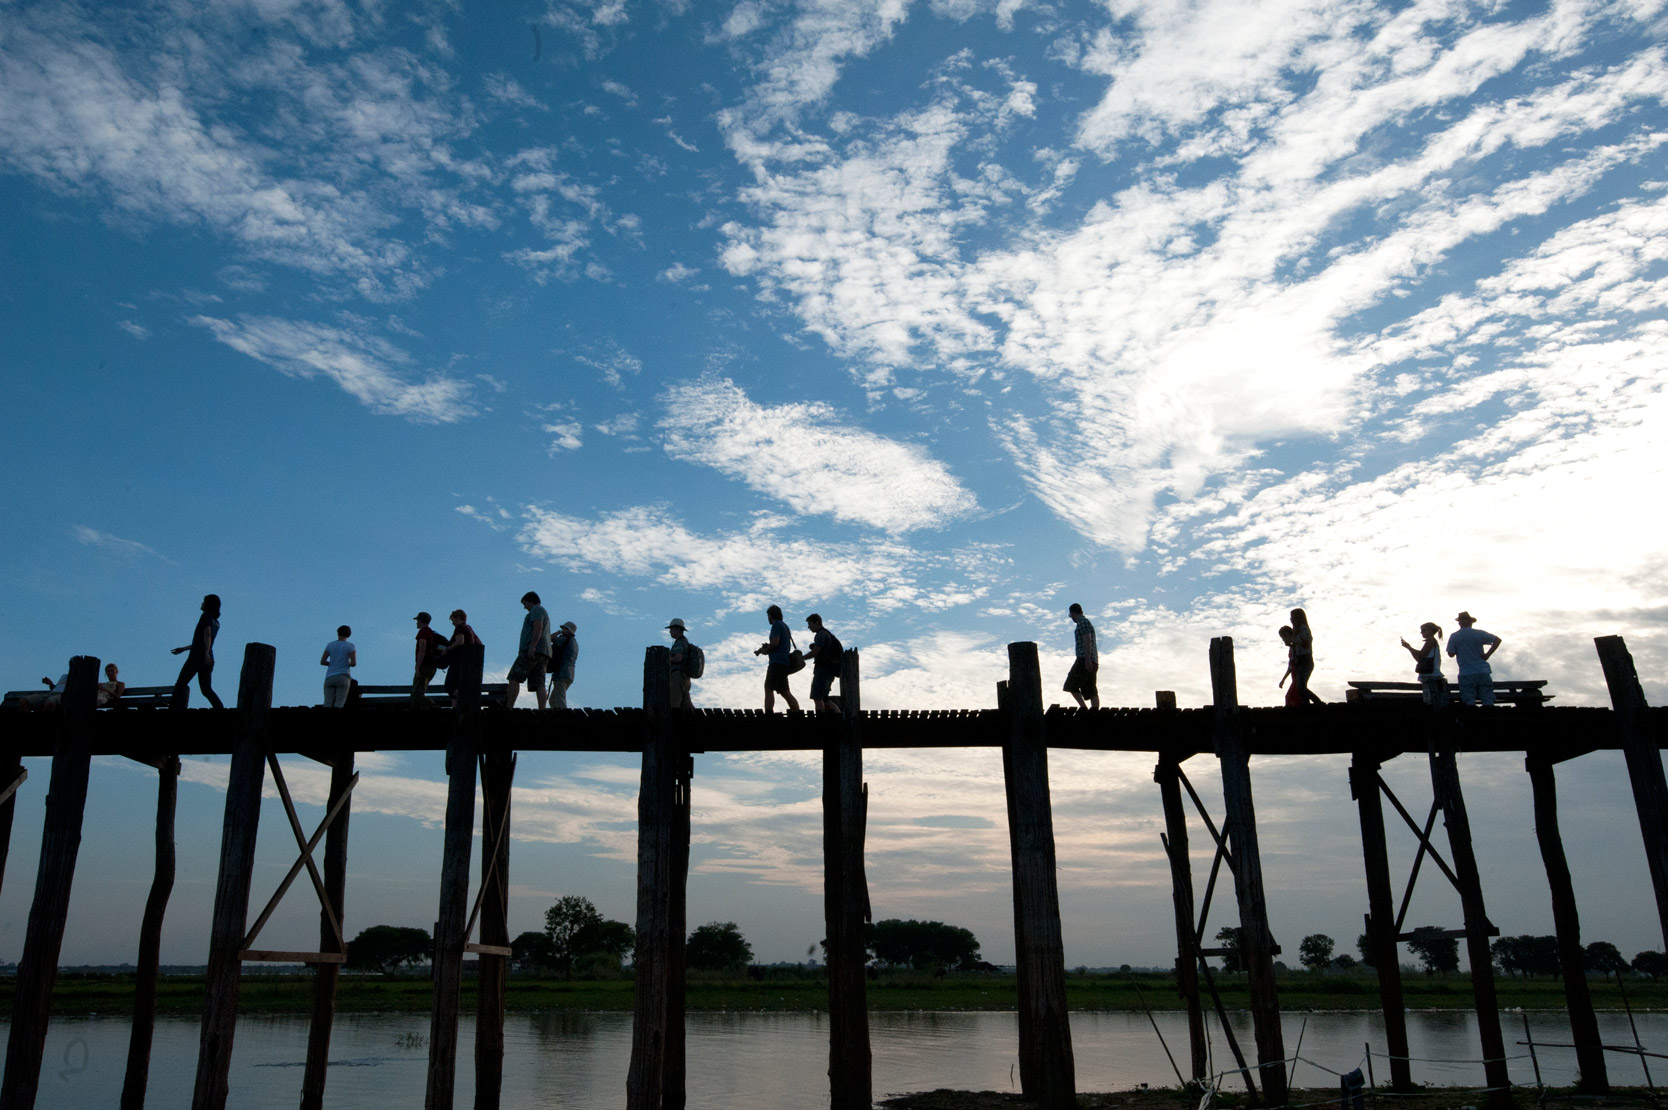 Dramatic sky silhouetting people crossing U Bein's Bridge, supported by 984 teak posts over 1.2 km distance across Thaumthaman Lake, Mandalay.